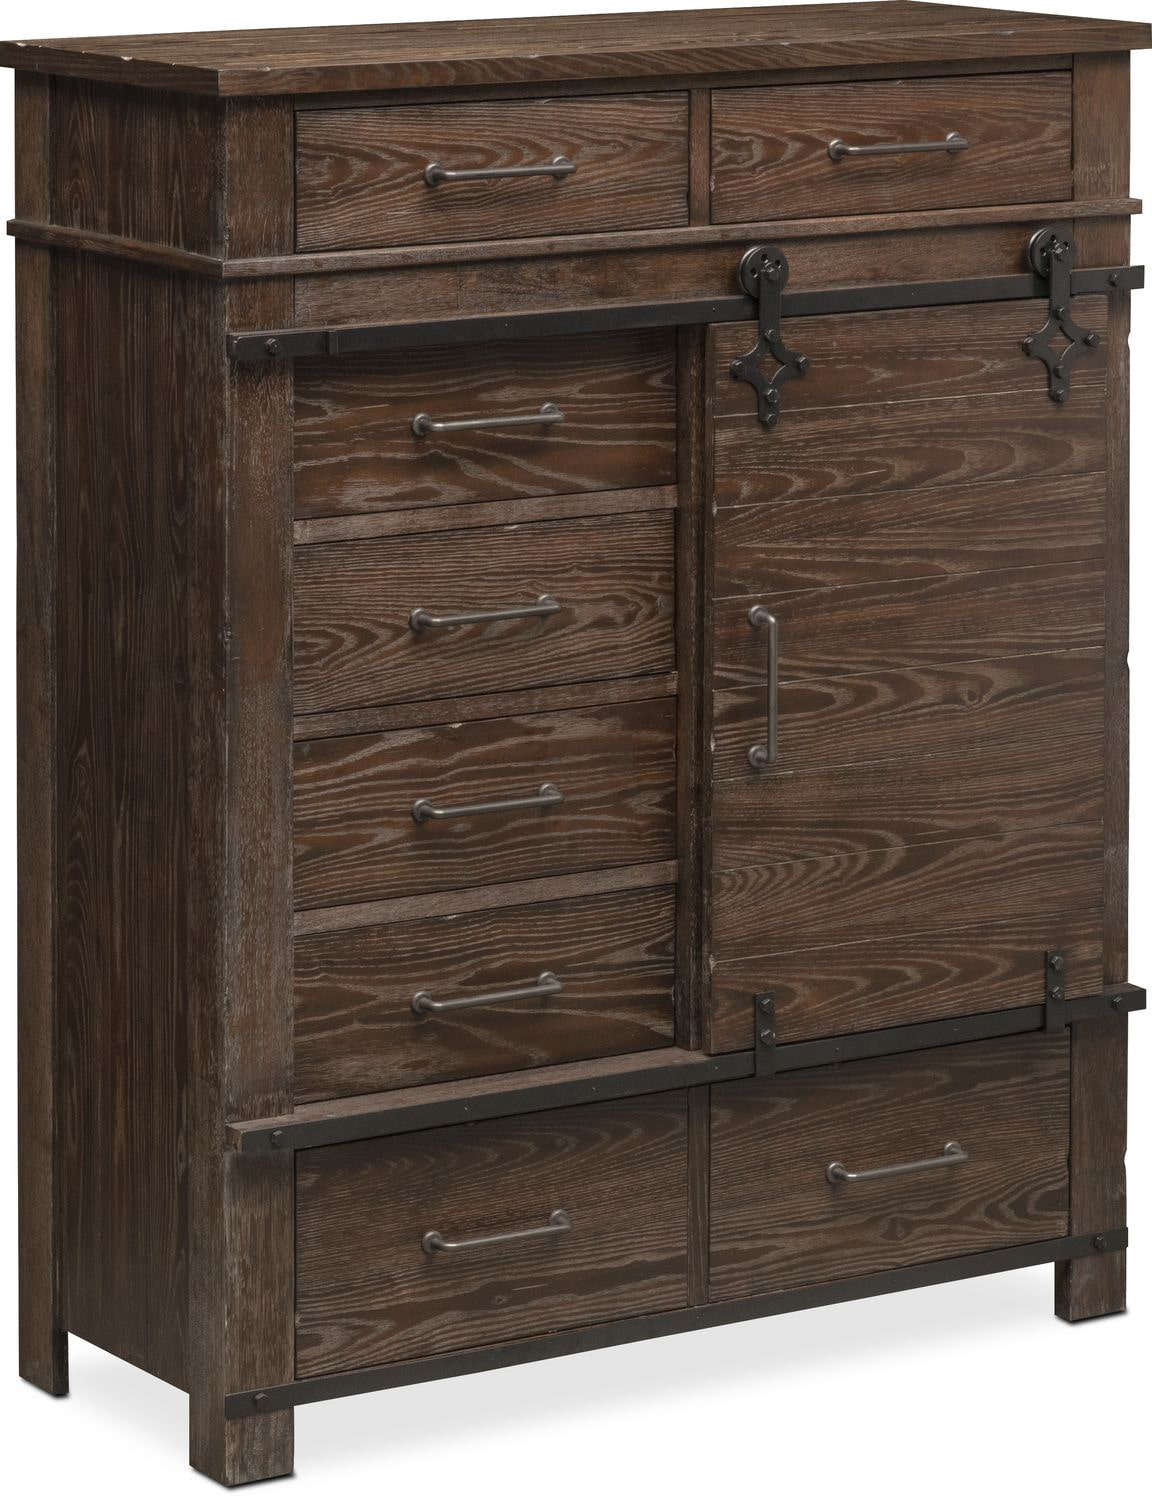 Bedroom Furniture - Founders Mill Chest